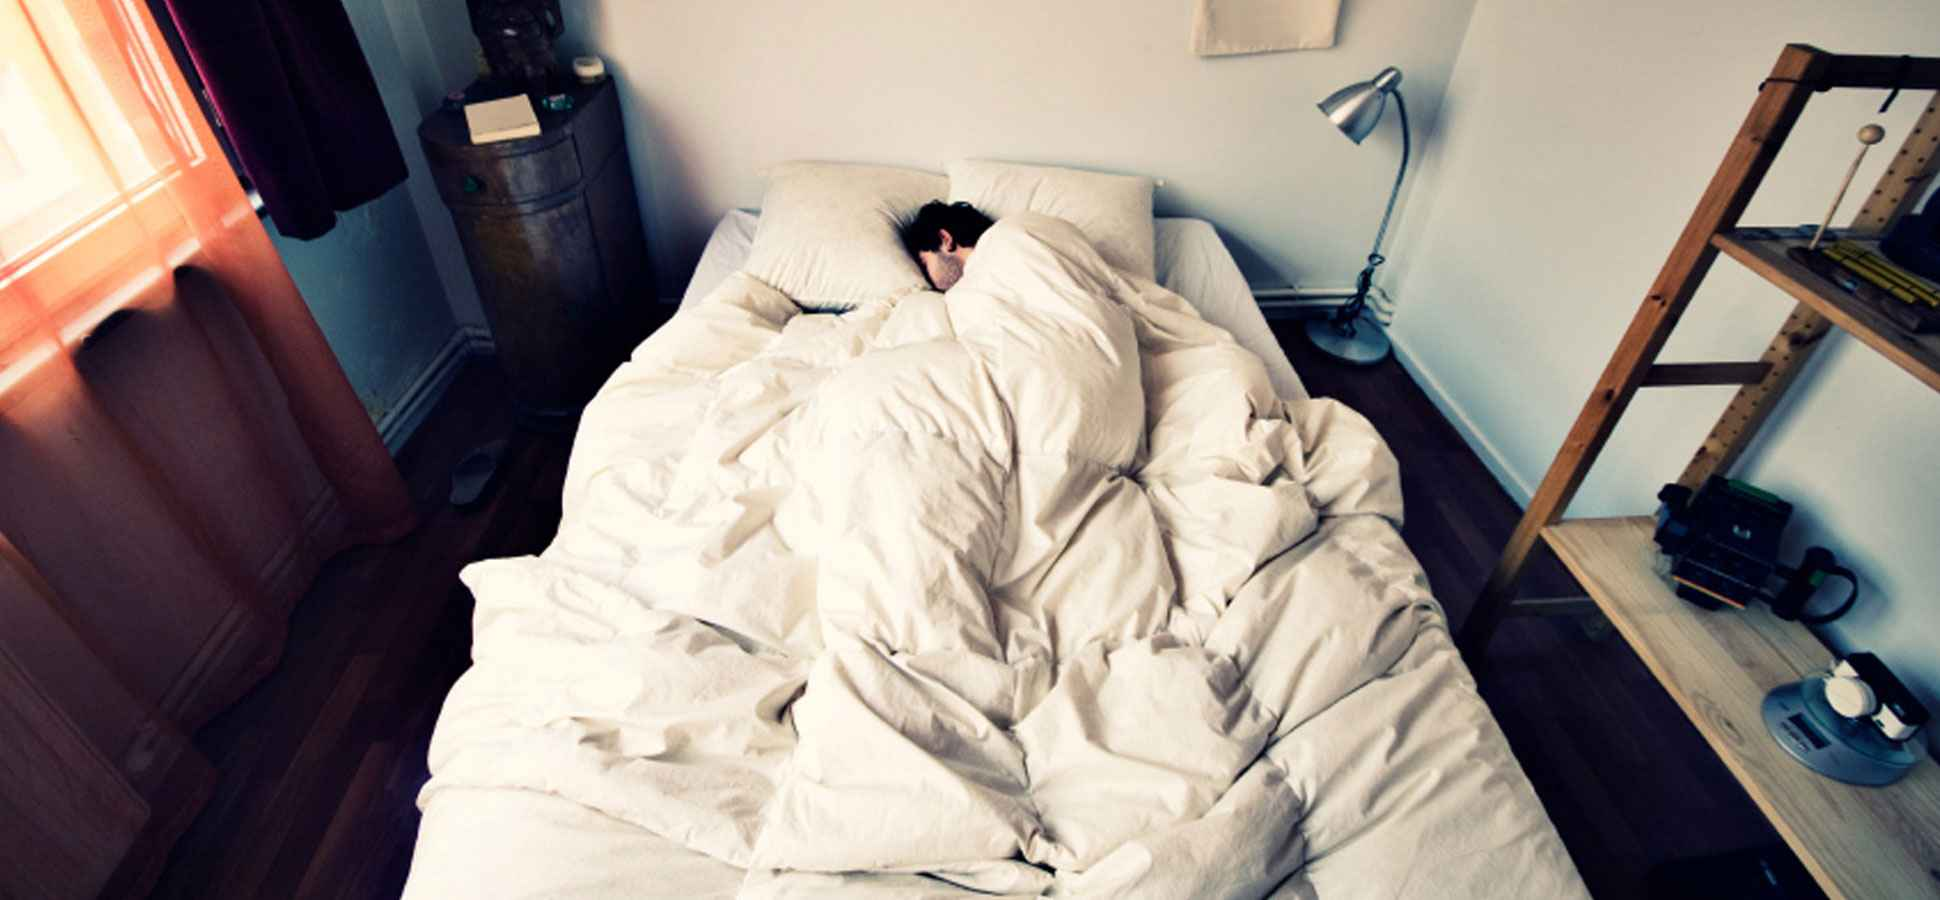 5 Tips to Get a Productive Night's Sleep